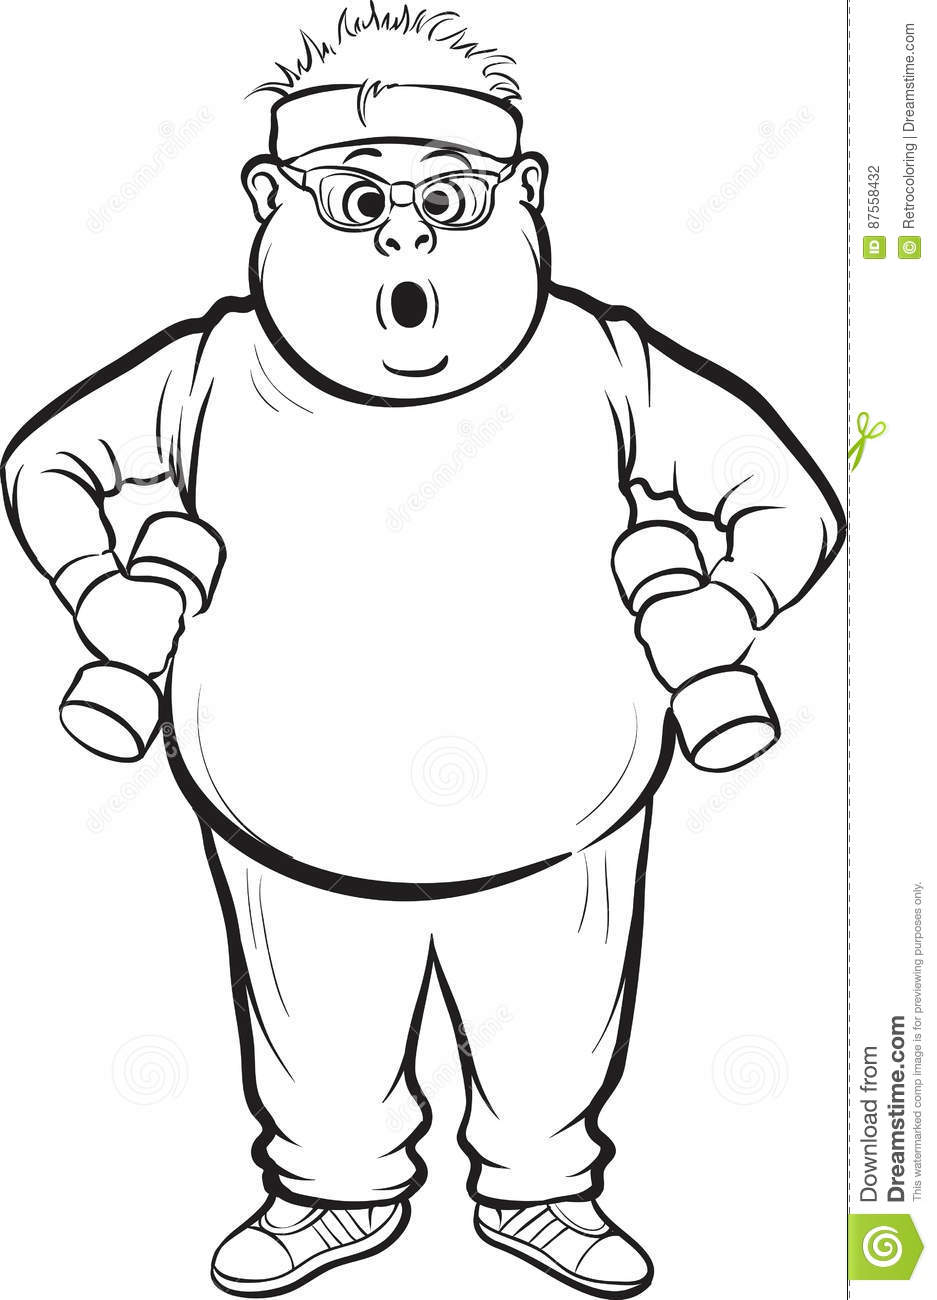 405 Petit Train Des Jours De Semaine A Decouper together with Fight As Warriors 204638422 in addition Top 10 Protein Sources For Vegetarians And Vegans moreover 6 besides . on routine coloring pages